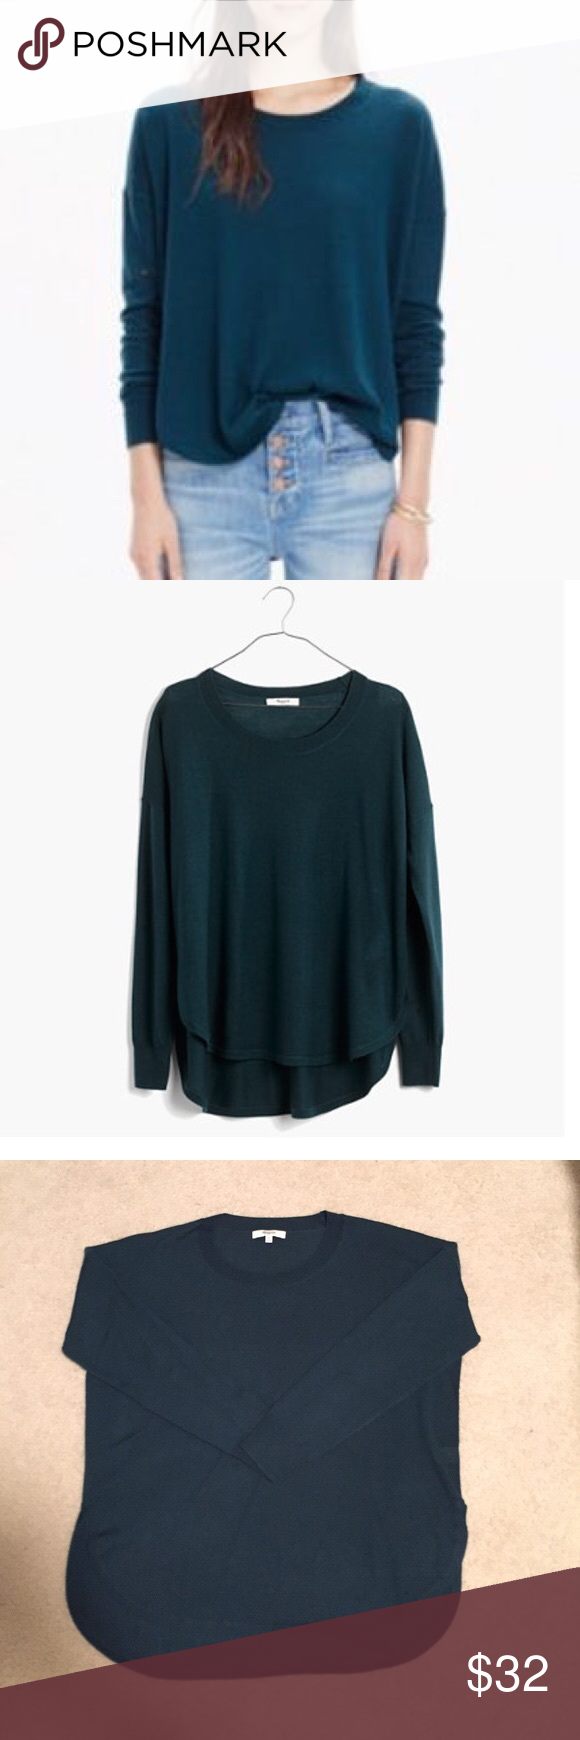 Madewell north star pullover A soft, swingy merino sweater with a cool exaggerated shirttail hem. Light, easy and a soon-to-be essential.   Swingy fit. Merino wool. Dark green color Madewell Sweaters Crew & Scoop Necks